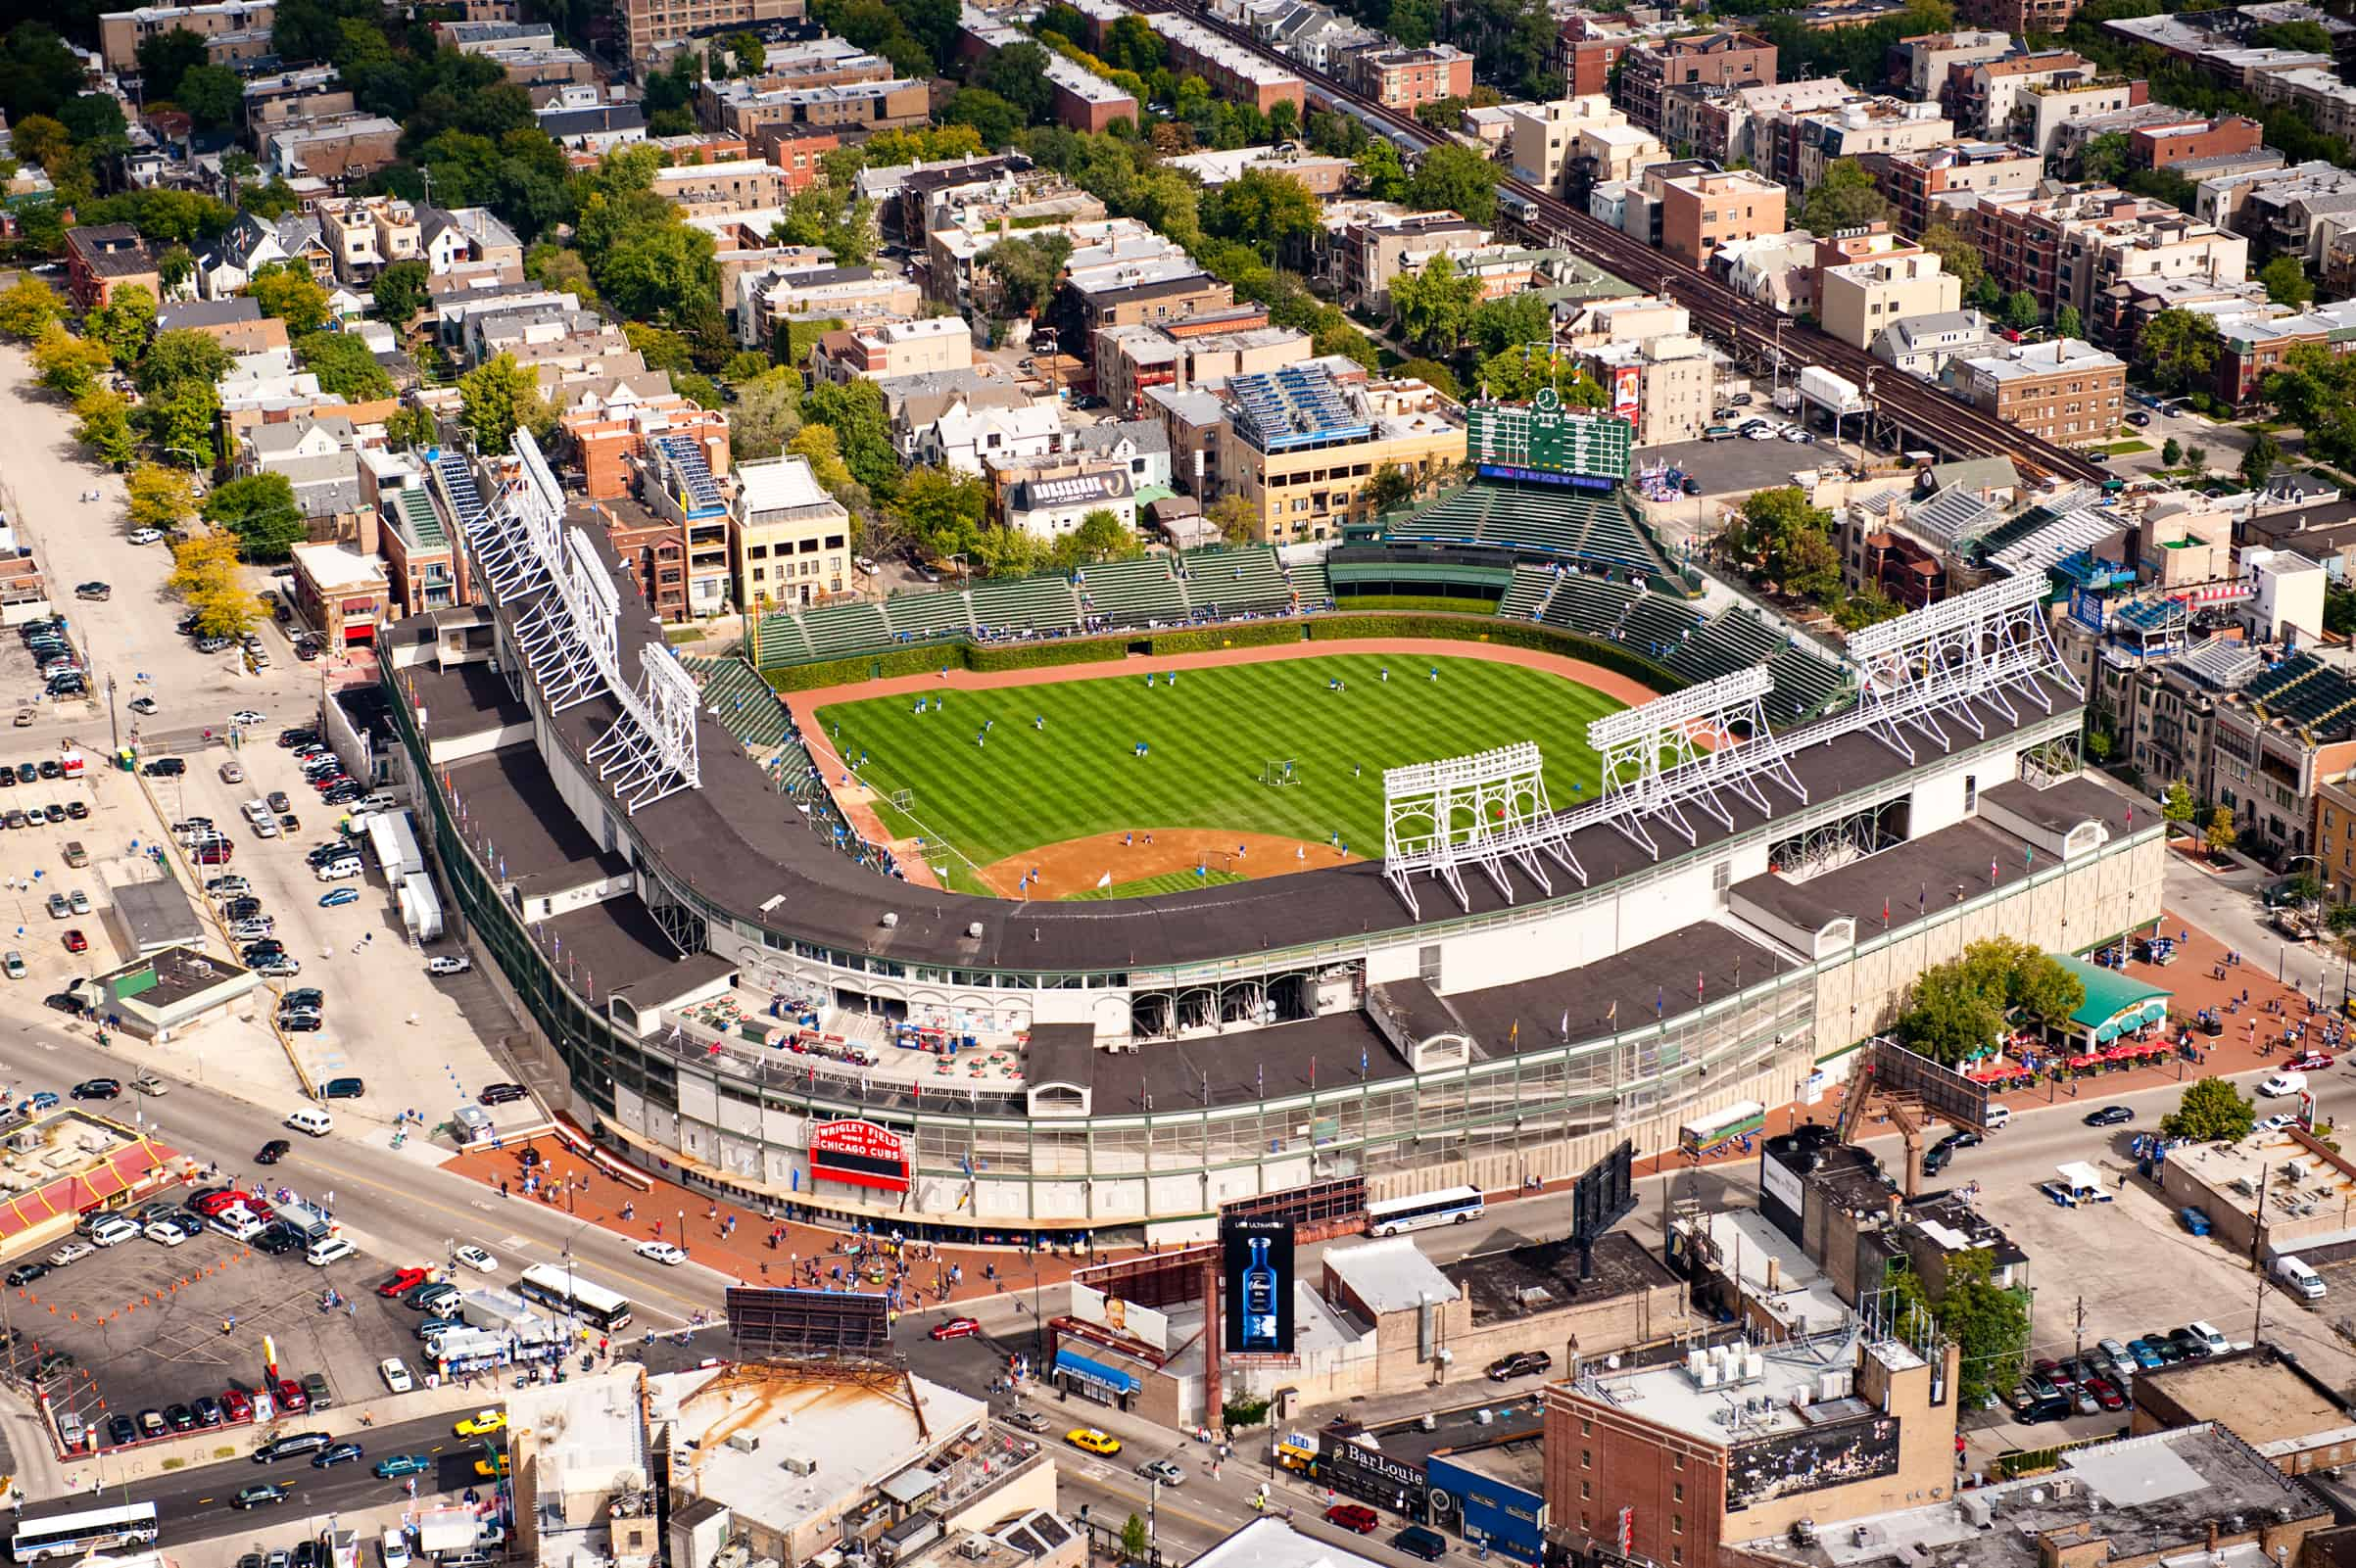 Aerial view of Wrigley Field and the surrounding Lakeview neighborhood.